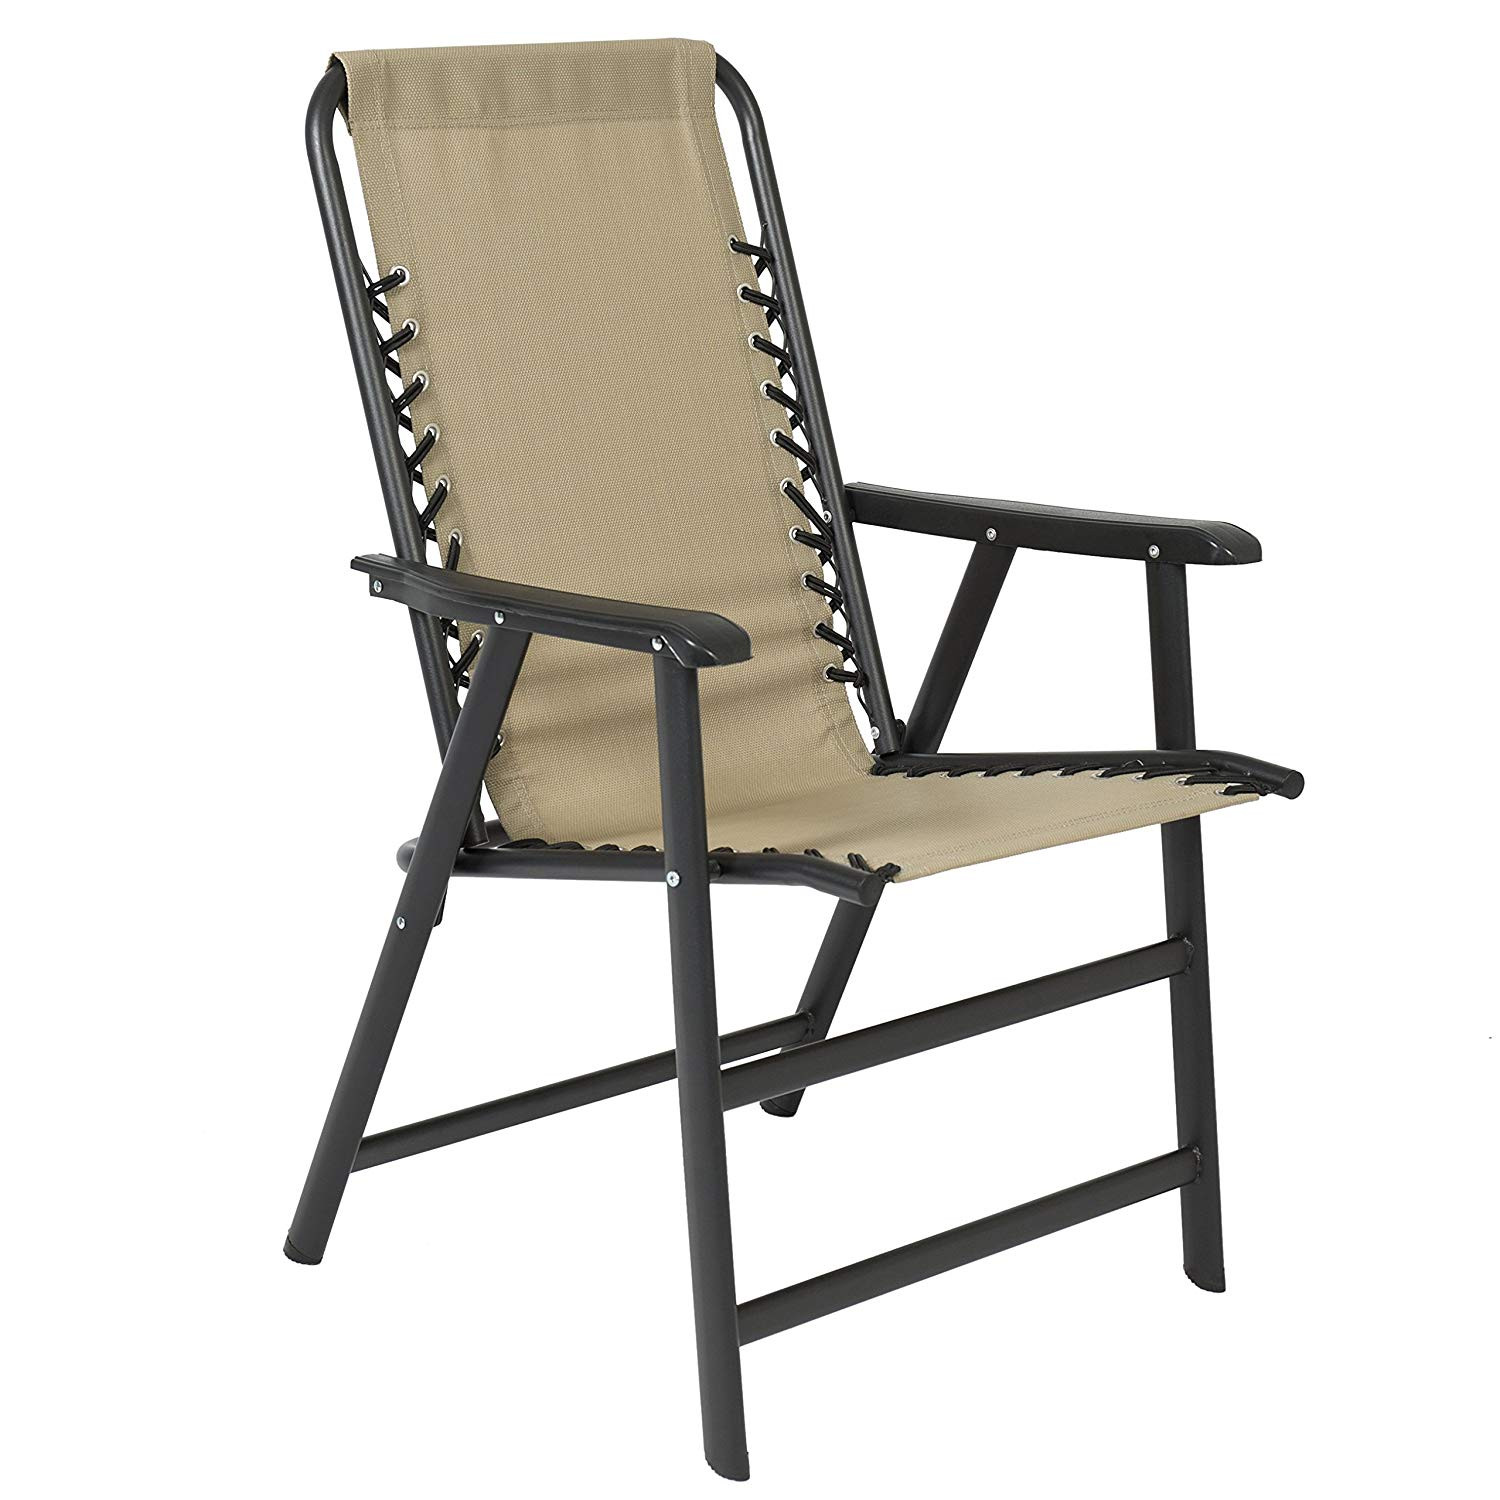 Best ideas about Folding Chairs Outdoor . Save or Pin Best Choice Products Lounge Suspension Folding Chair Now.